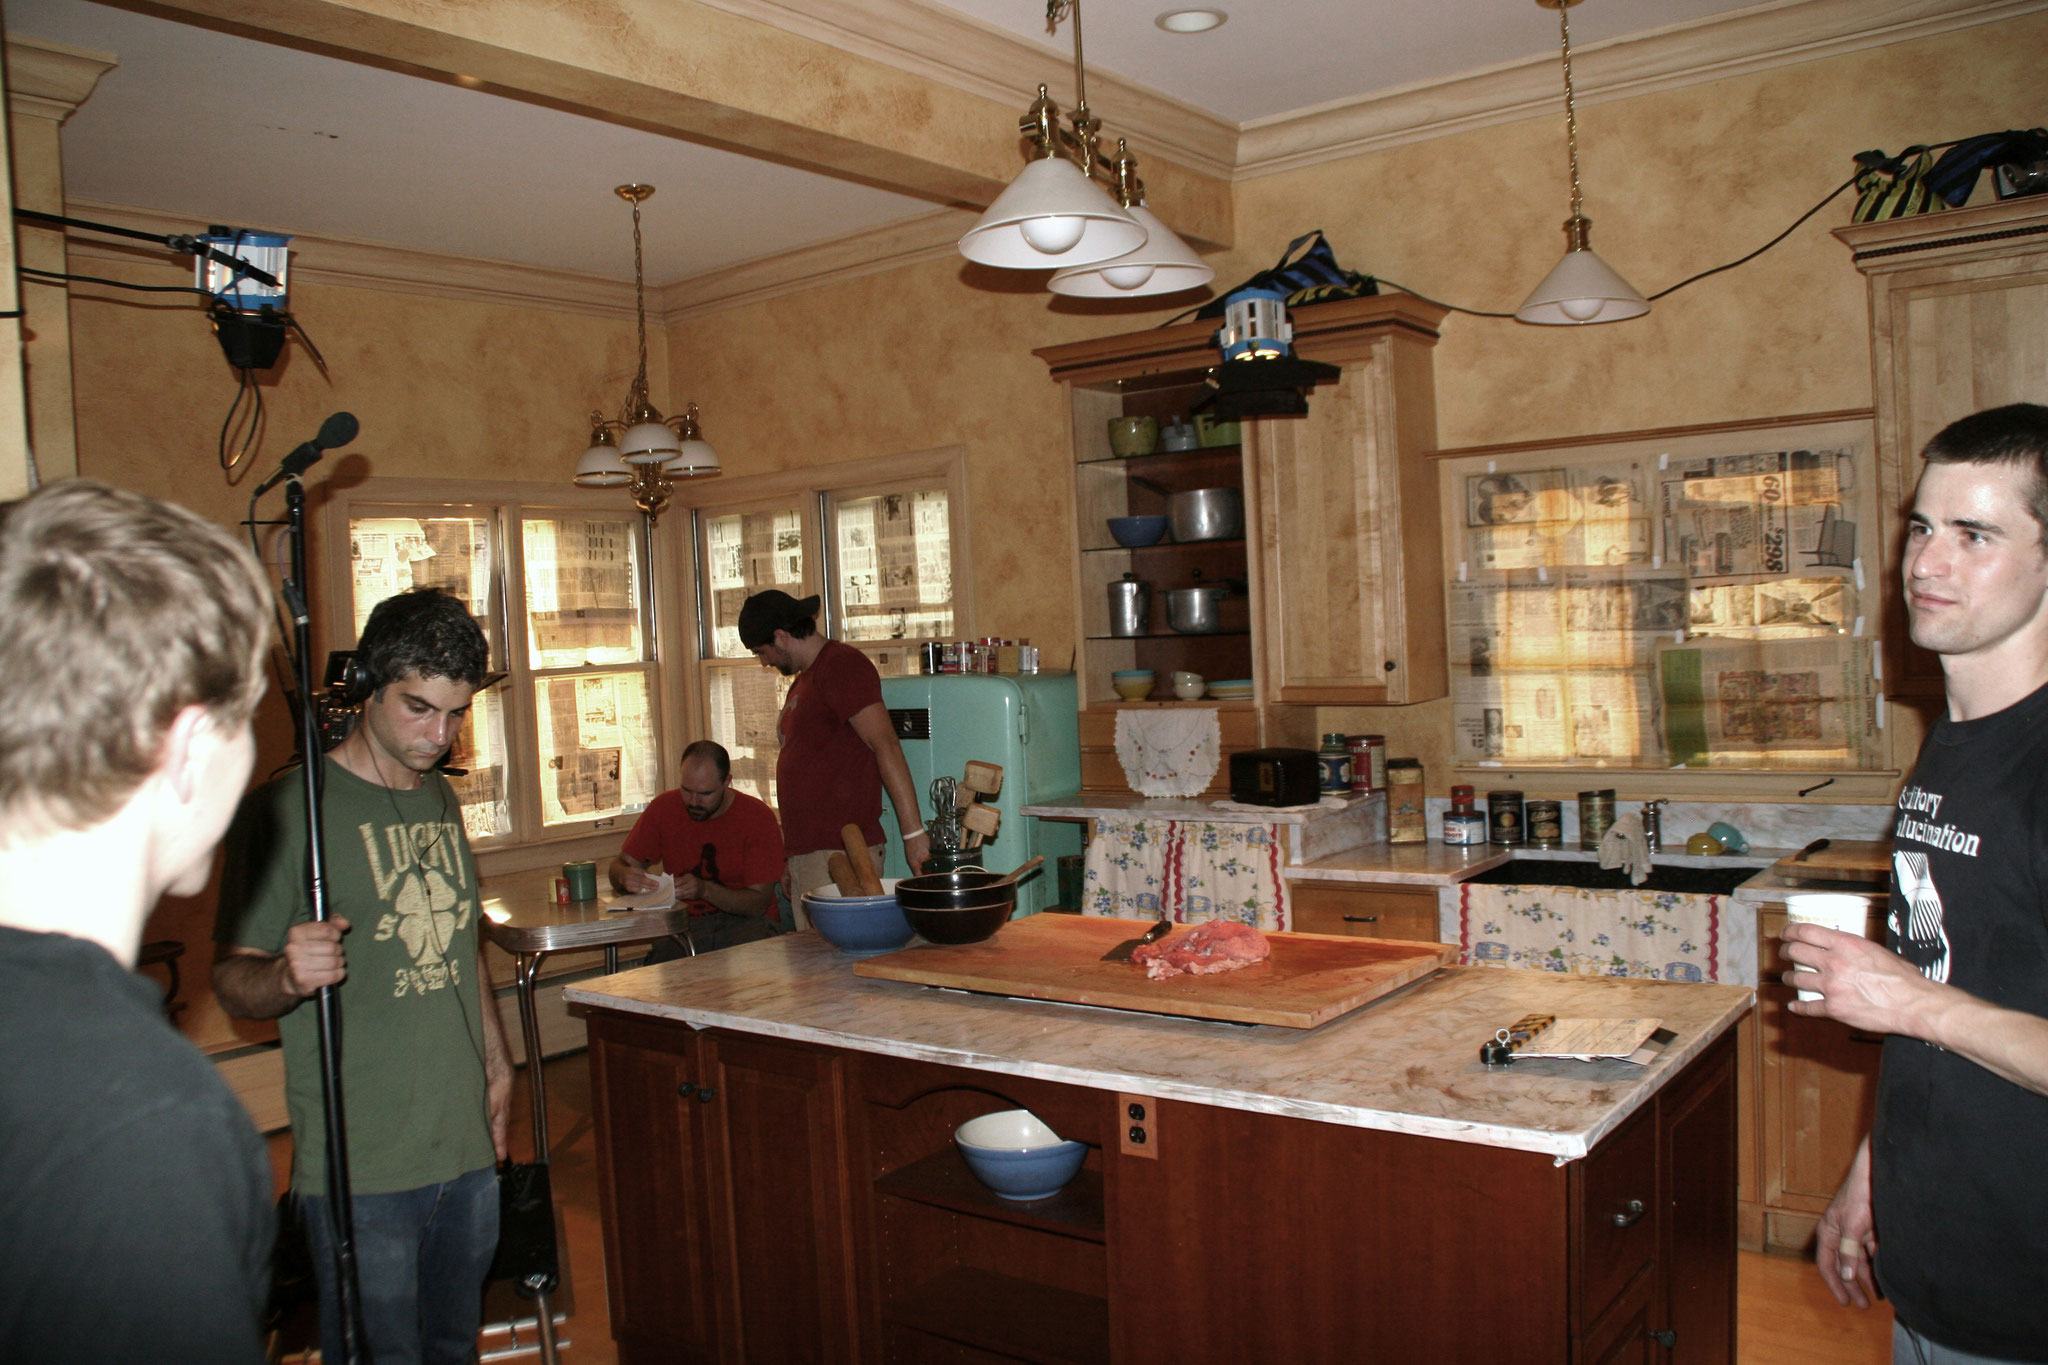 The team setting up a sequence in the kitchen of Grandma O'Malley's house.